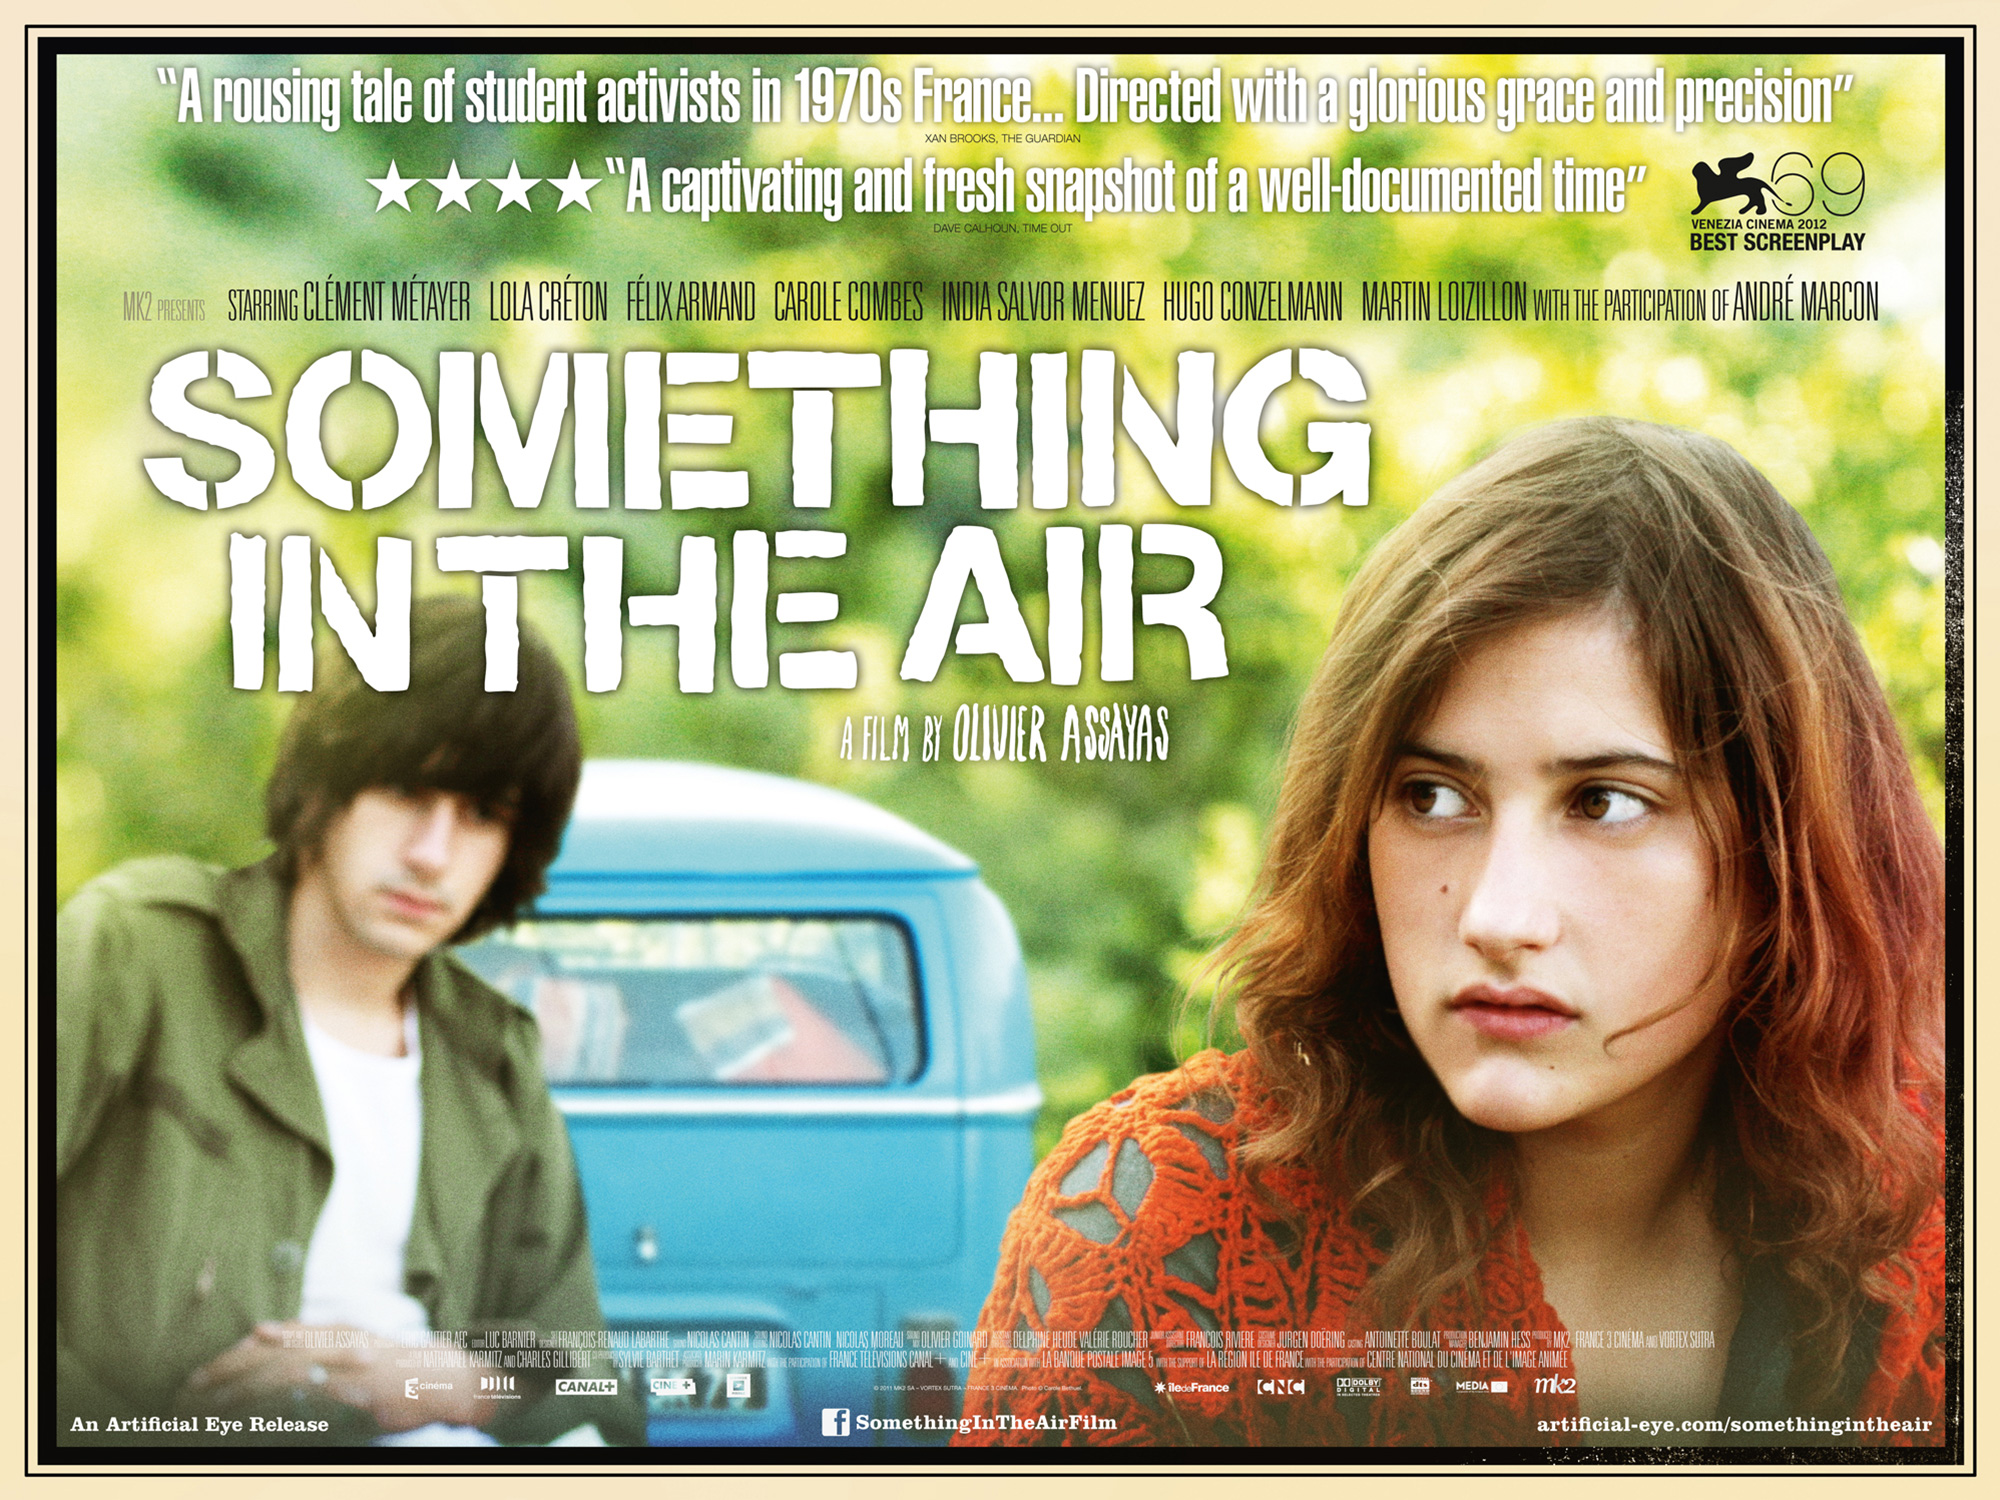 Something in the Air - Curzon Artificial Eye